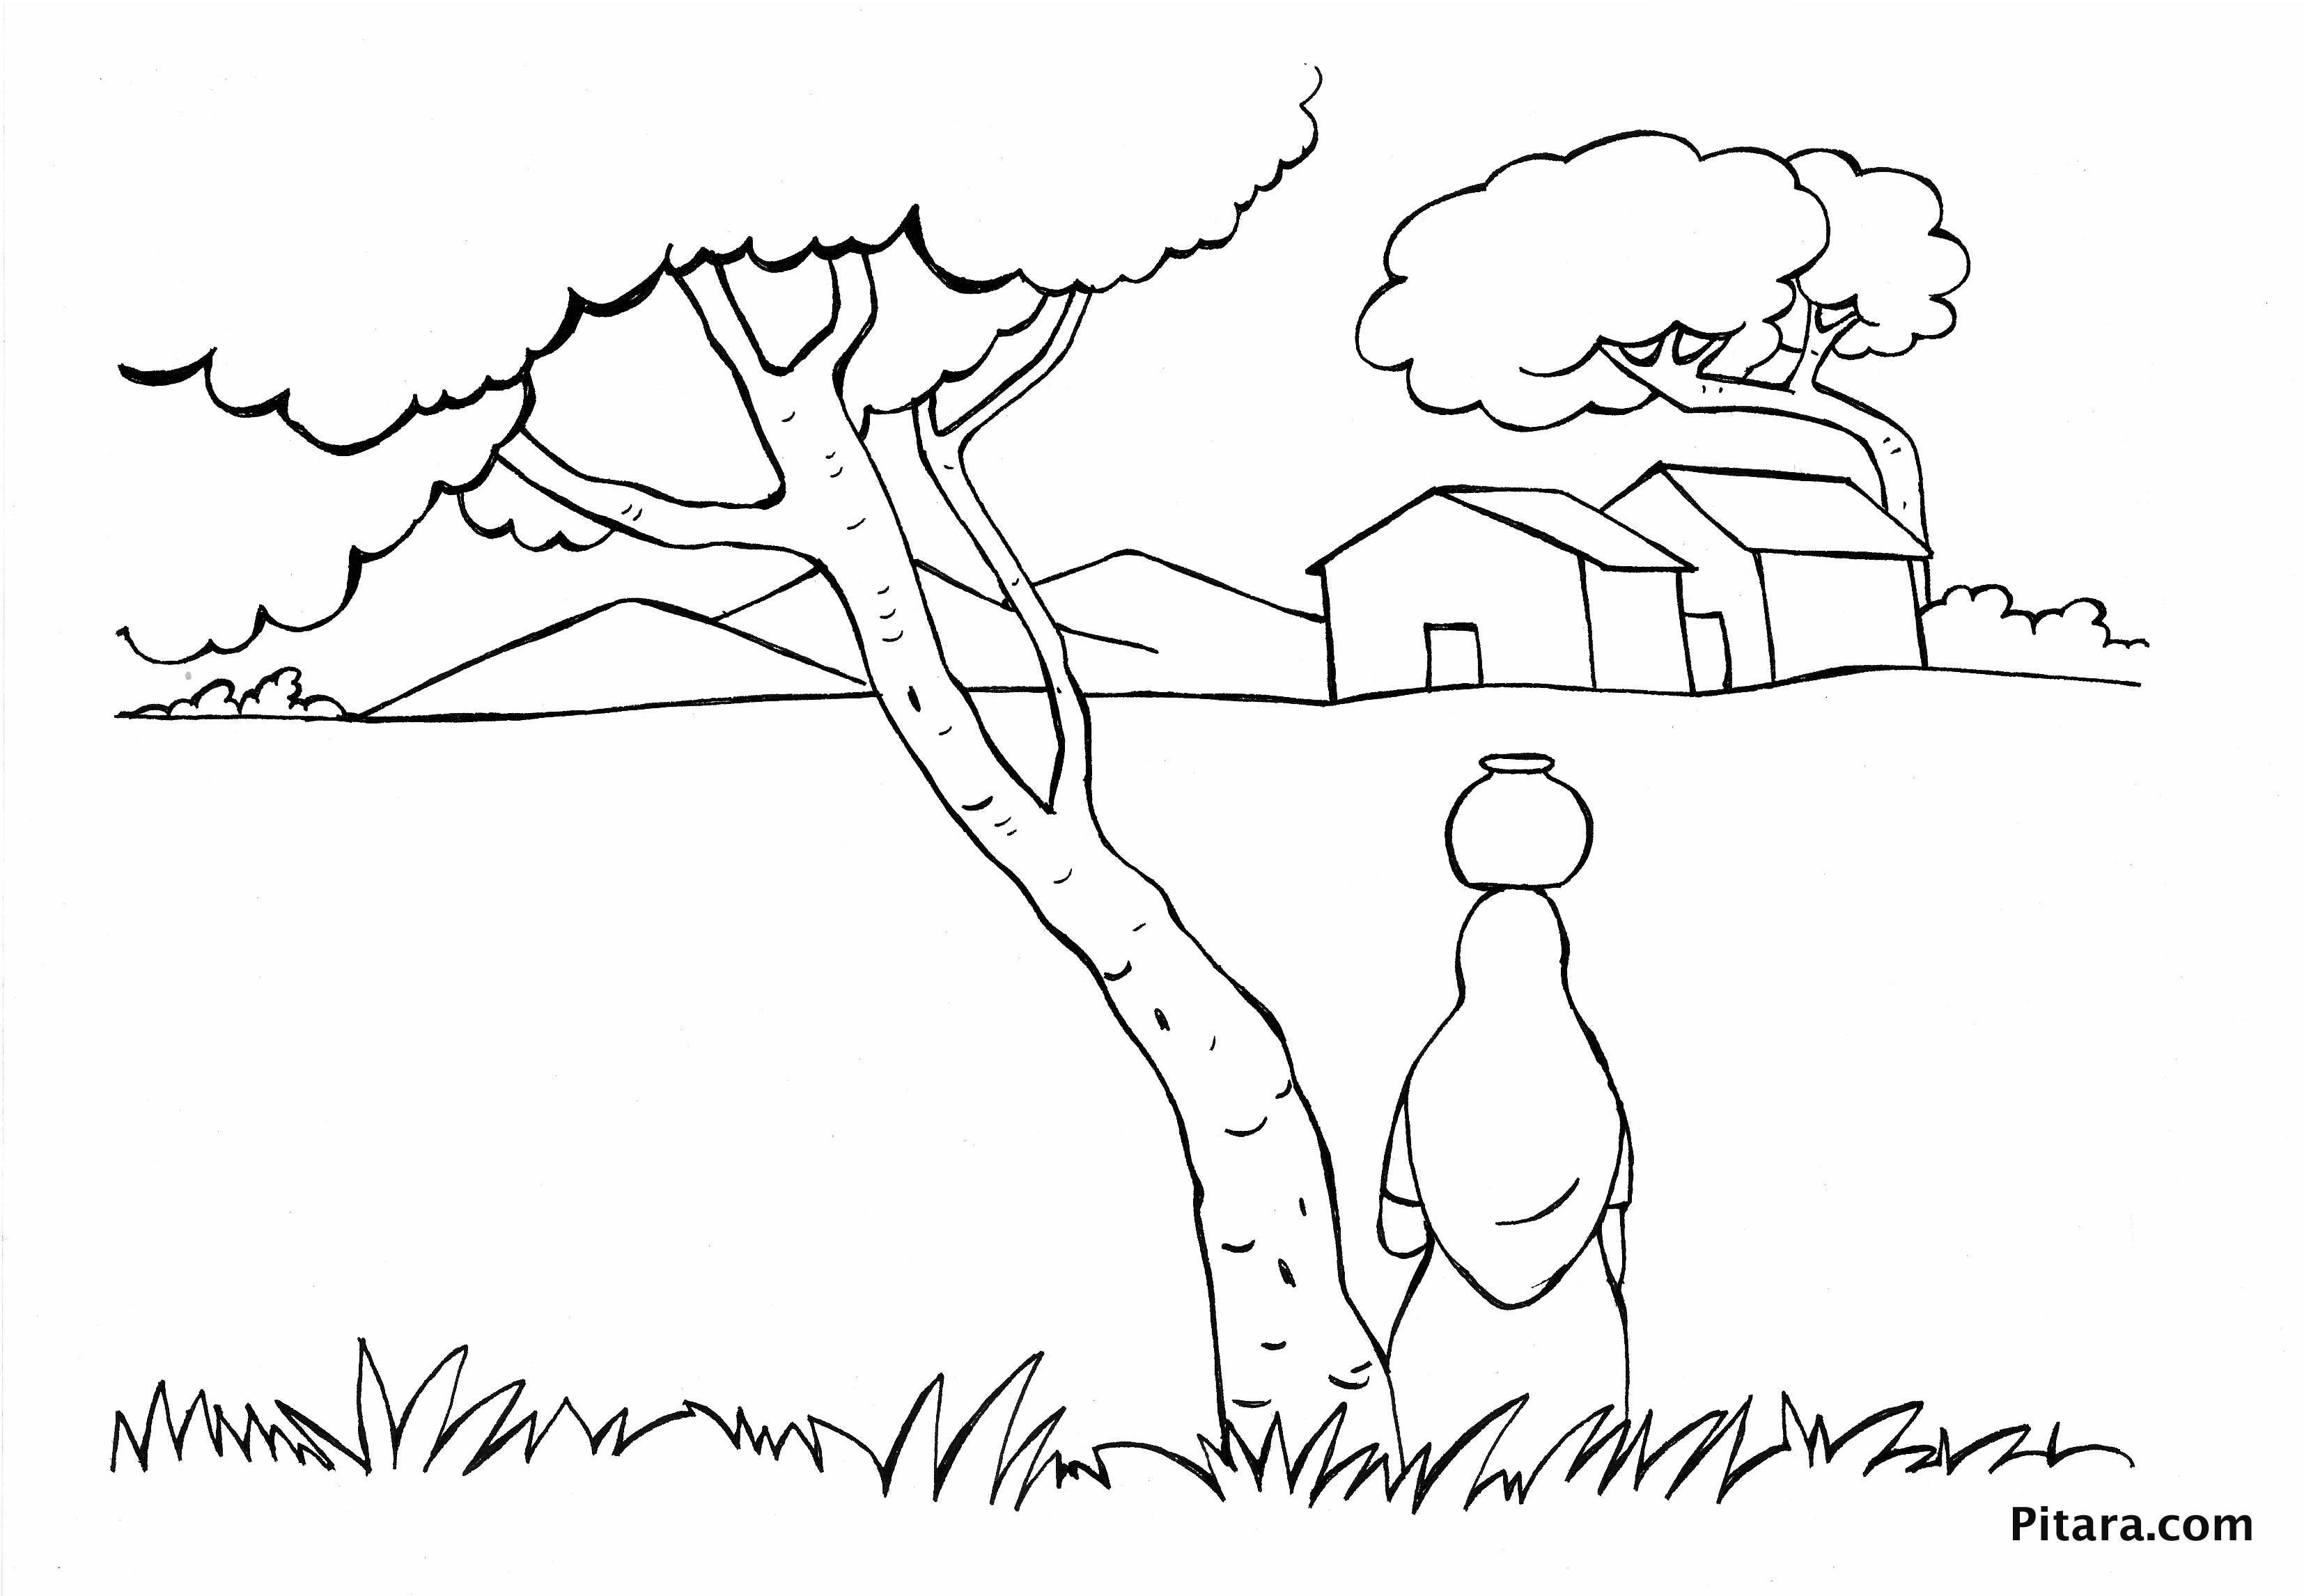 village colouring pages pin by ava everett on adult coloring pages coloring village pages colouring